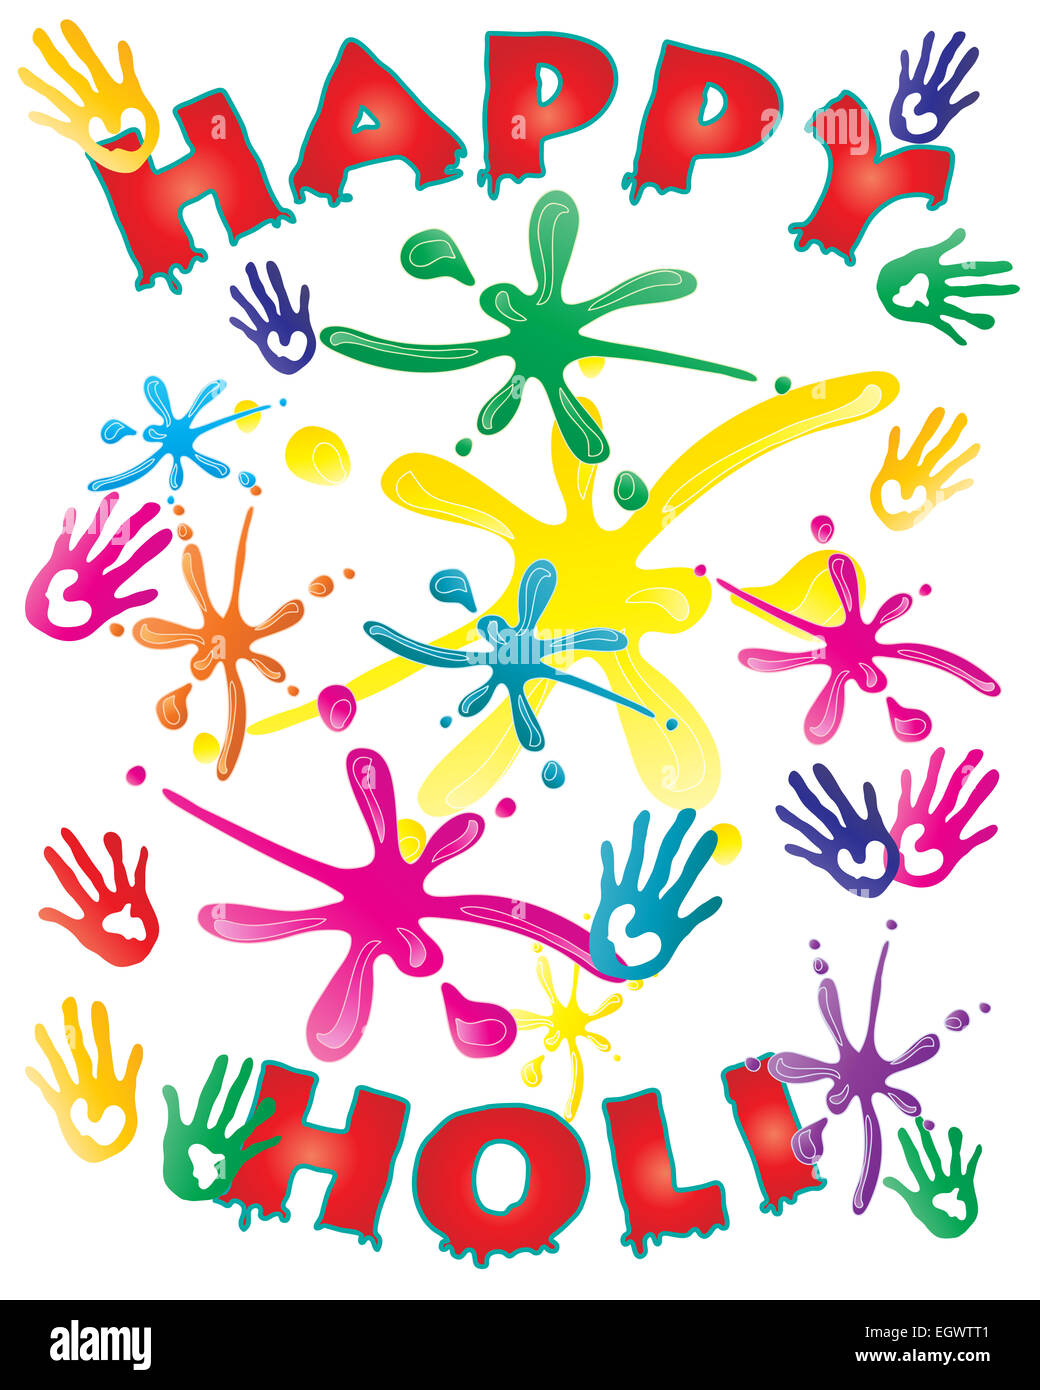 An Illustration Of A Colorful Holi Festival Greeting Card With Paint